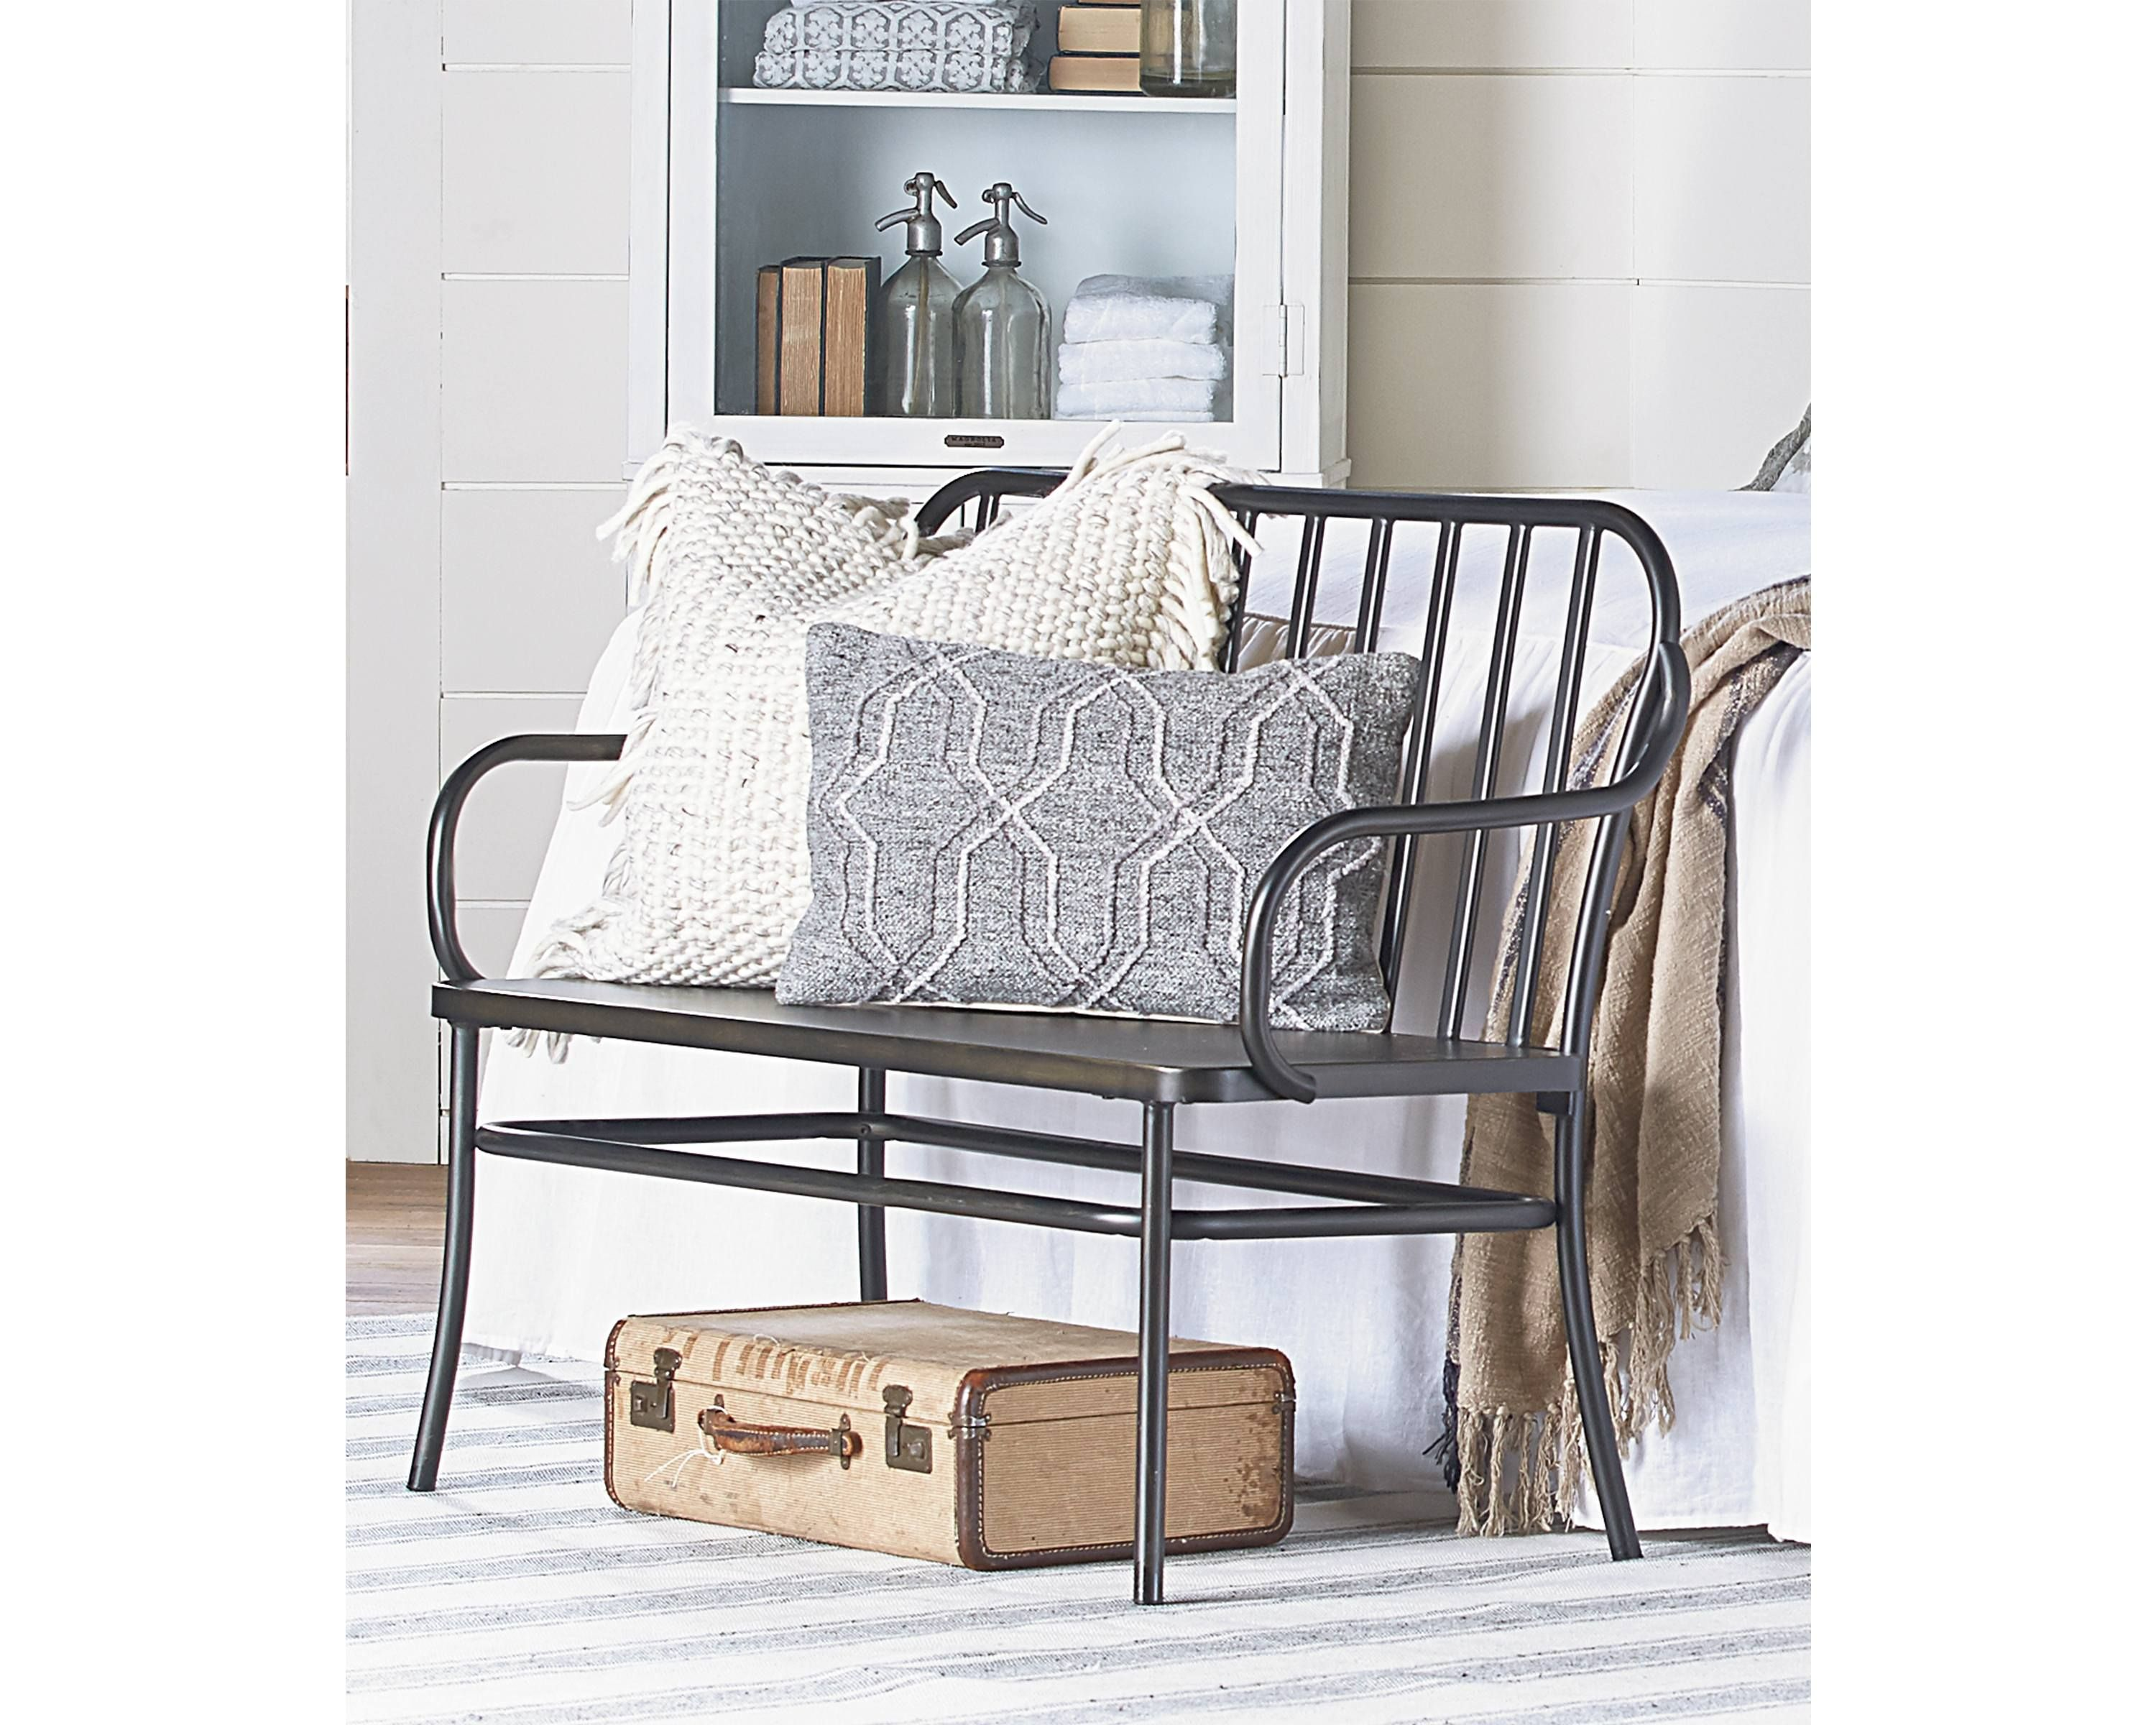 Park Bench Magnolia Home (With images) Industrial